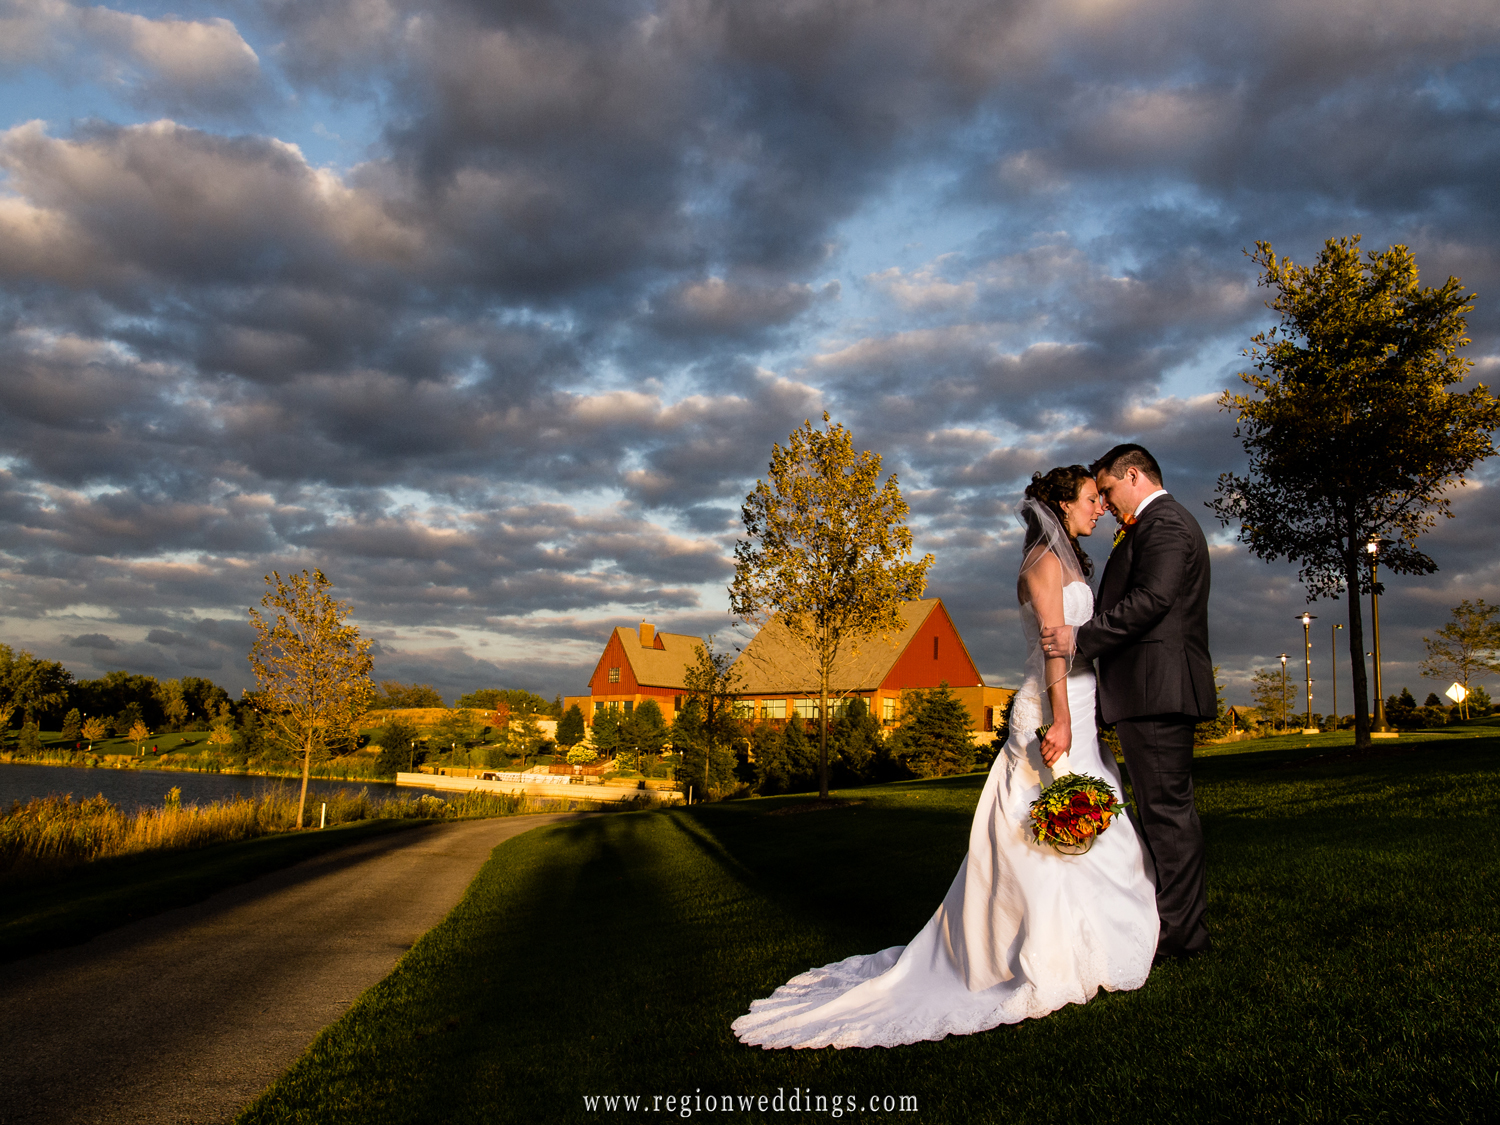 A dramatic sky overlooks Centennial Park as the bride and groom embrace underneath the shade of a nearby tree.